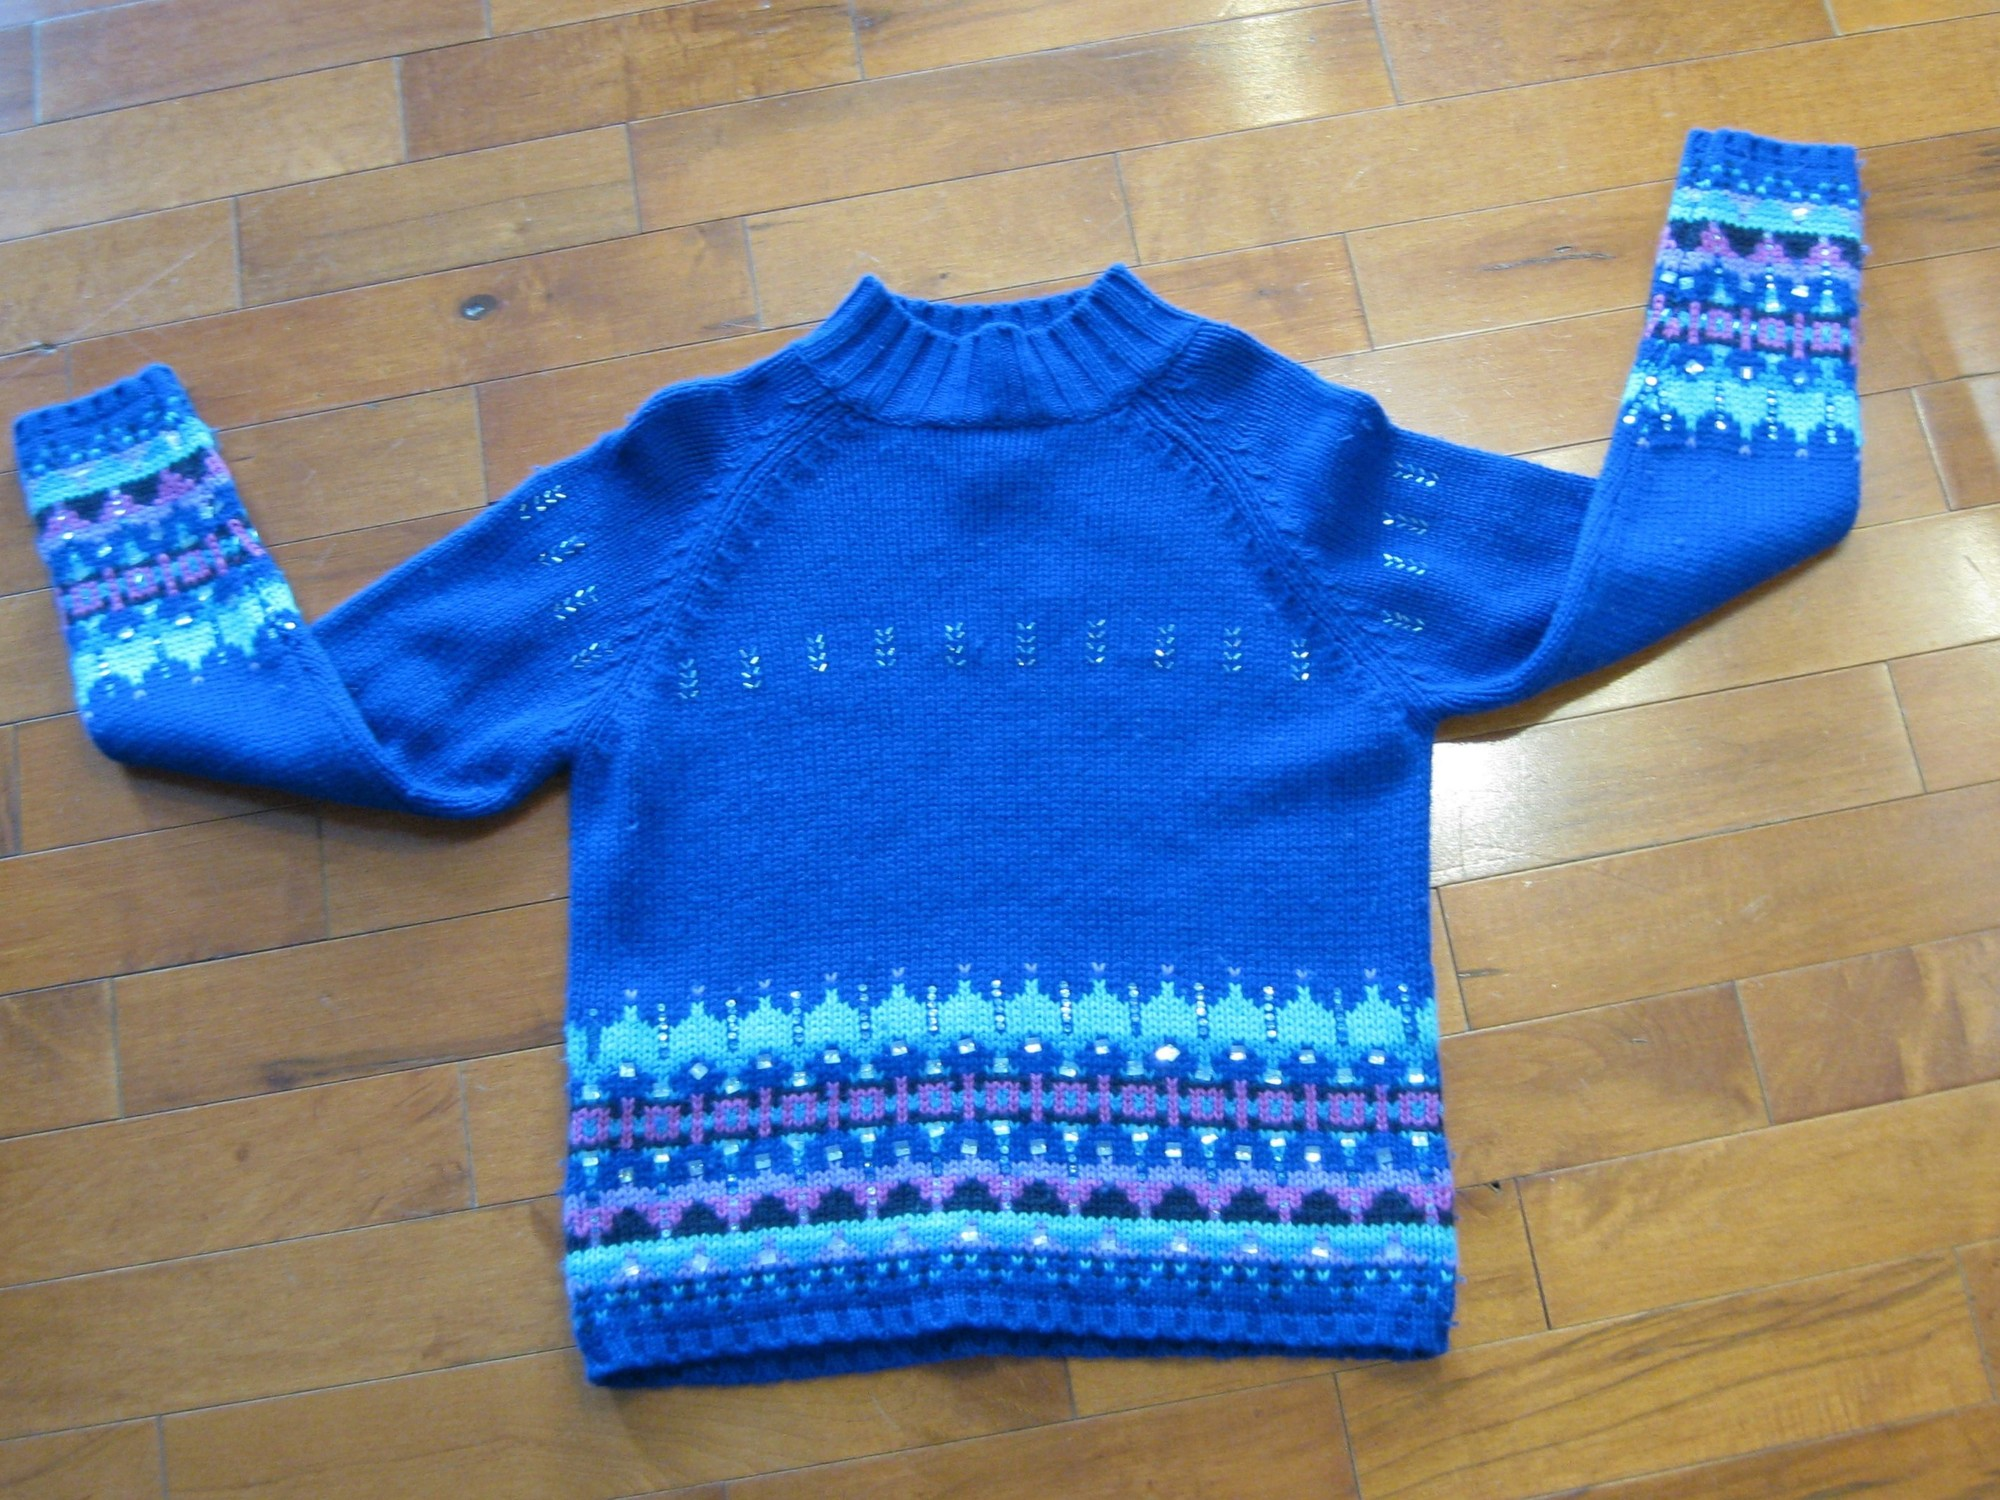 Acrylic and lambswool blend ski sweater by St. John's Bay from the 1980s<br /> So cute in royal blue with touches of lavender and a sprinkling of bugle beads<br /> small section of missing beads as shown<br /> Marked size medium petite<br /> flat measurements:<br /> armpit to armpit: 18.75in<br /> length: 20in<br /> <br /> made in Hong Kong<br /> <br /> thanks for looking!<br /> #39252